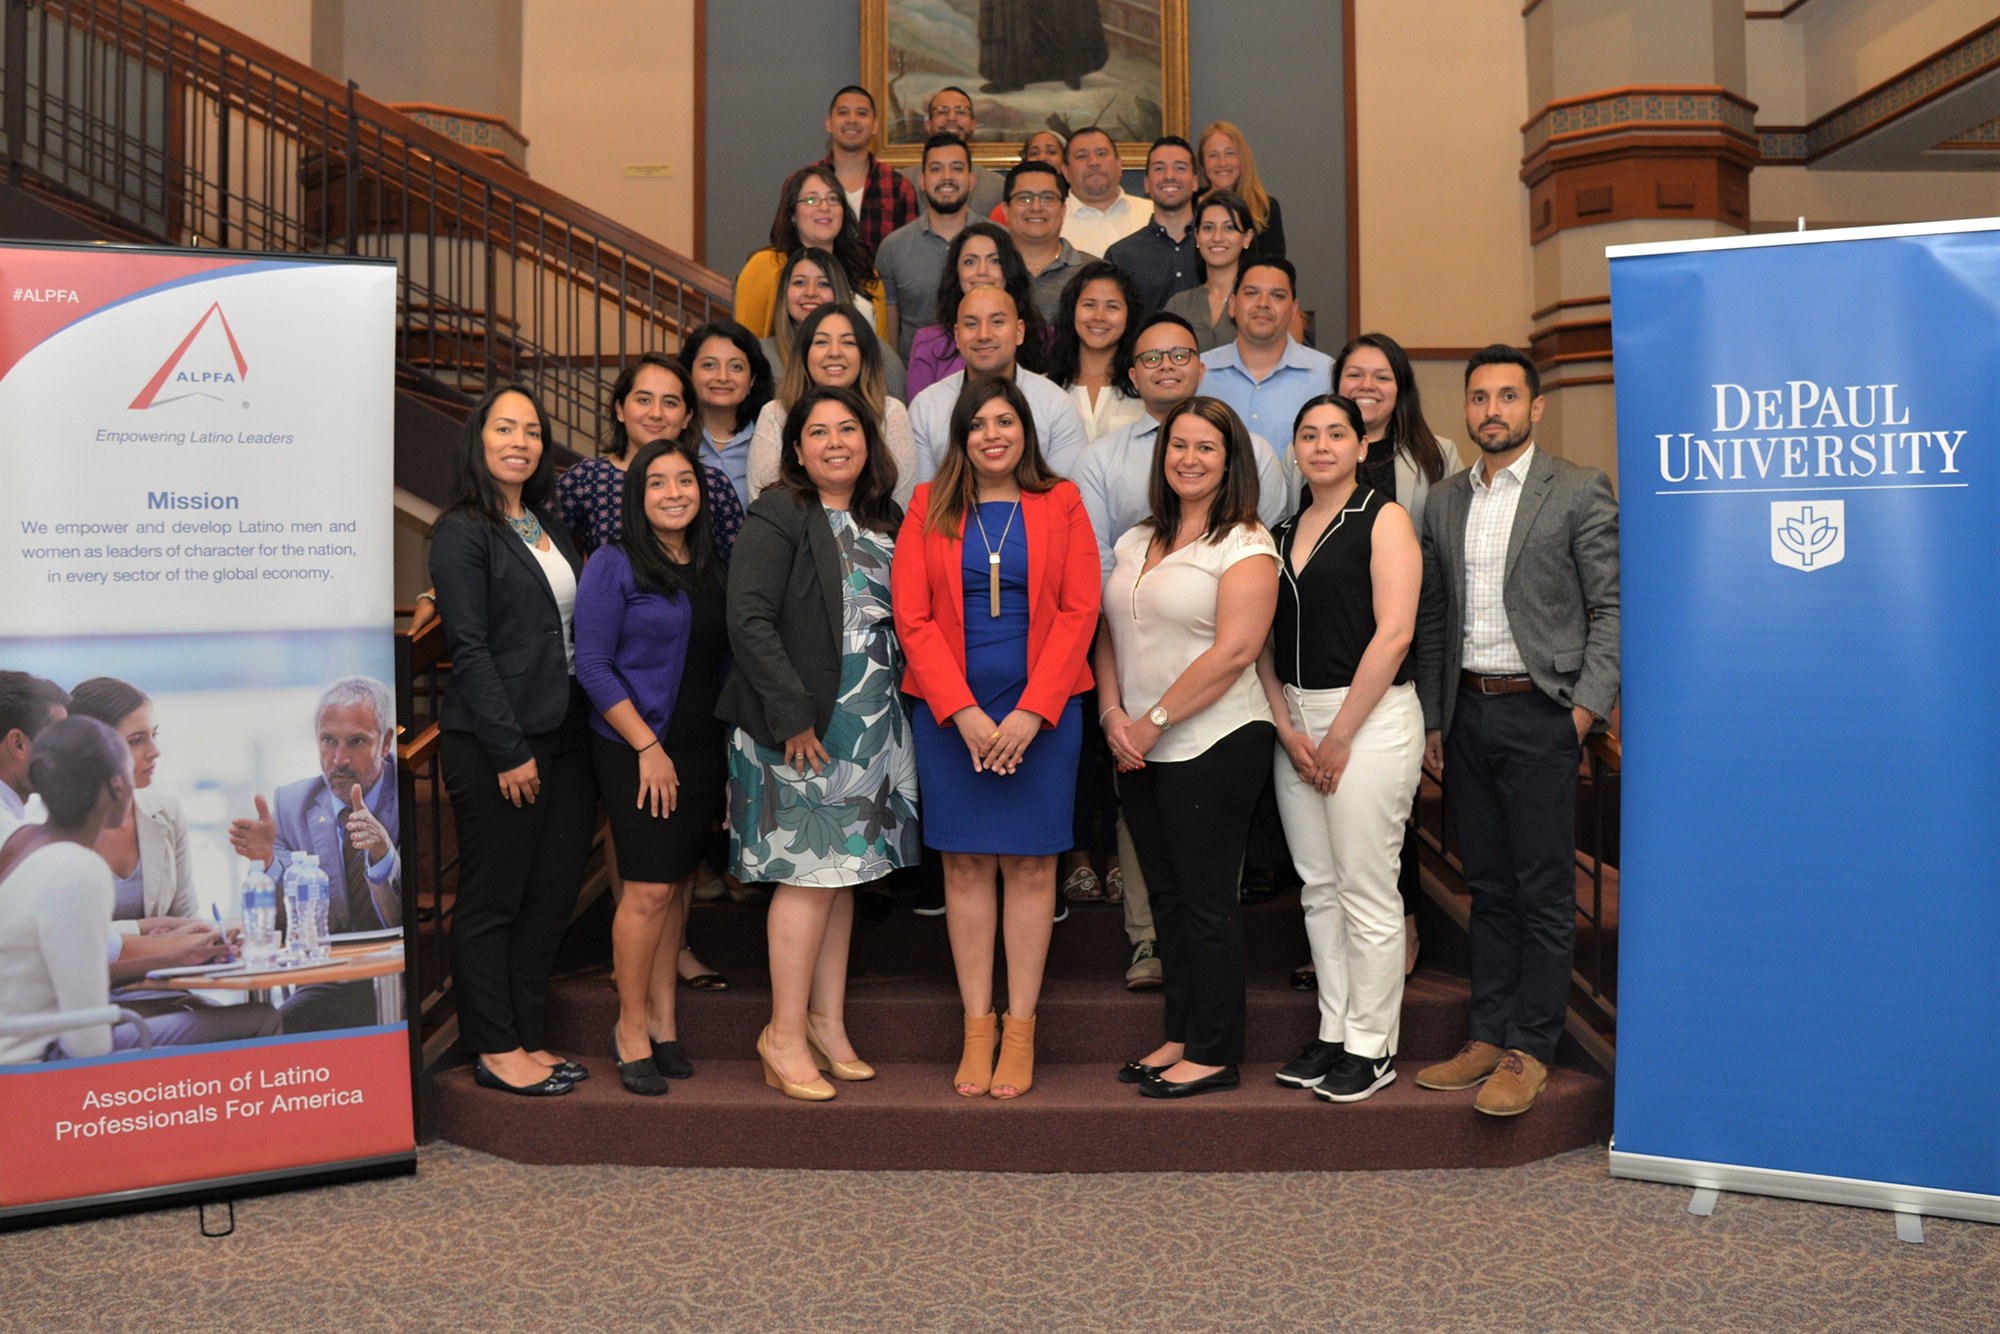 Association of Latino Professionals for America (ALPFA) cohort